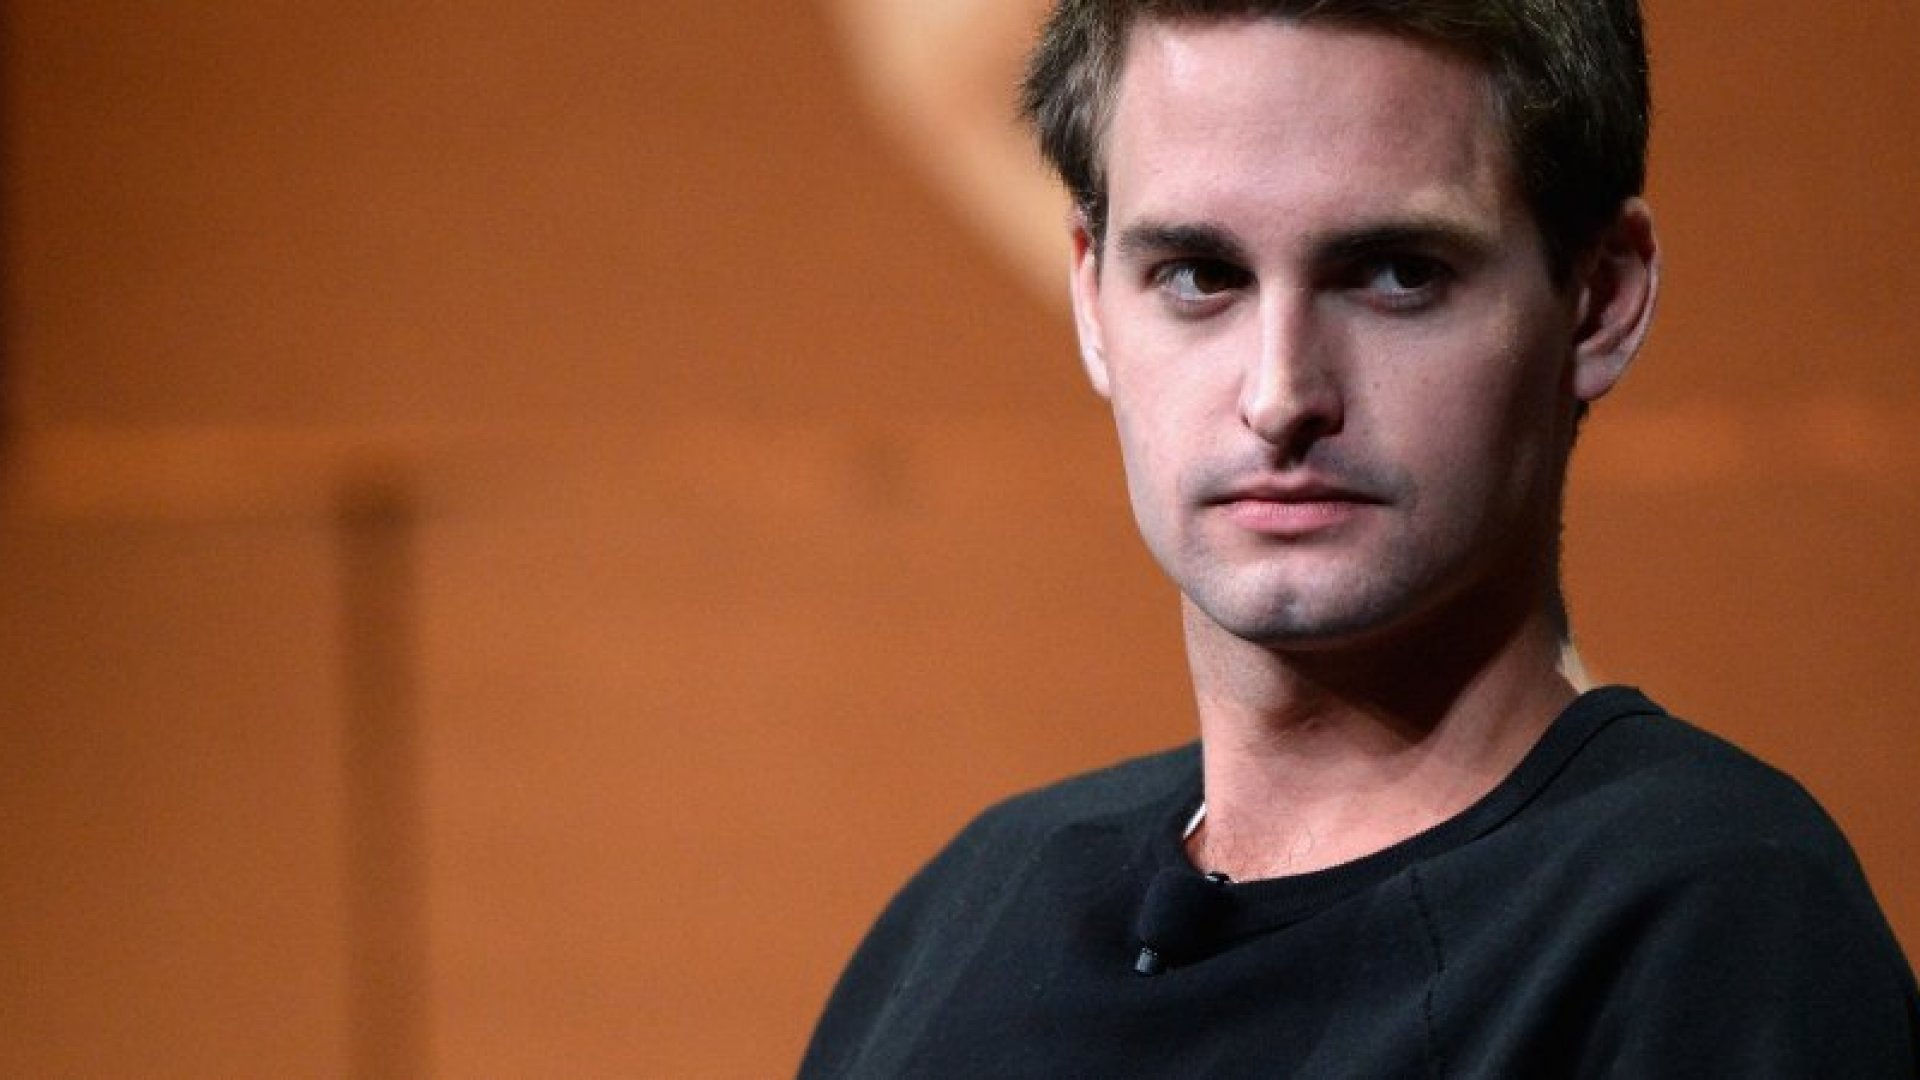 Hacked Sony Emails Will Change the Way You Look at Snapchat's CEO